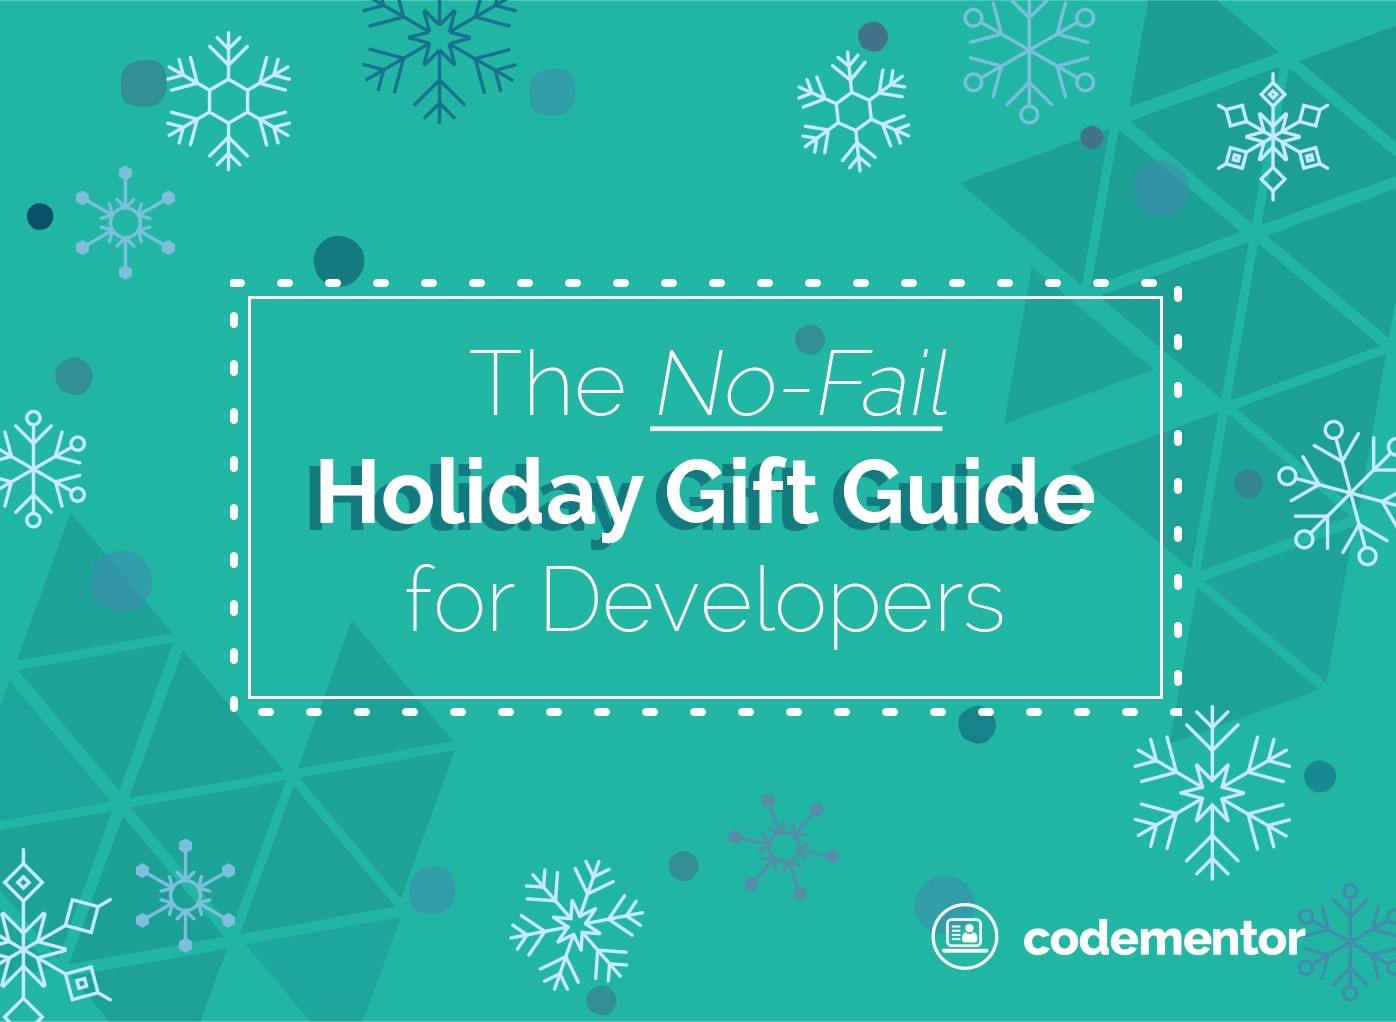 The No-Fail Holiday Gift Guide for Developers